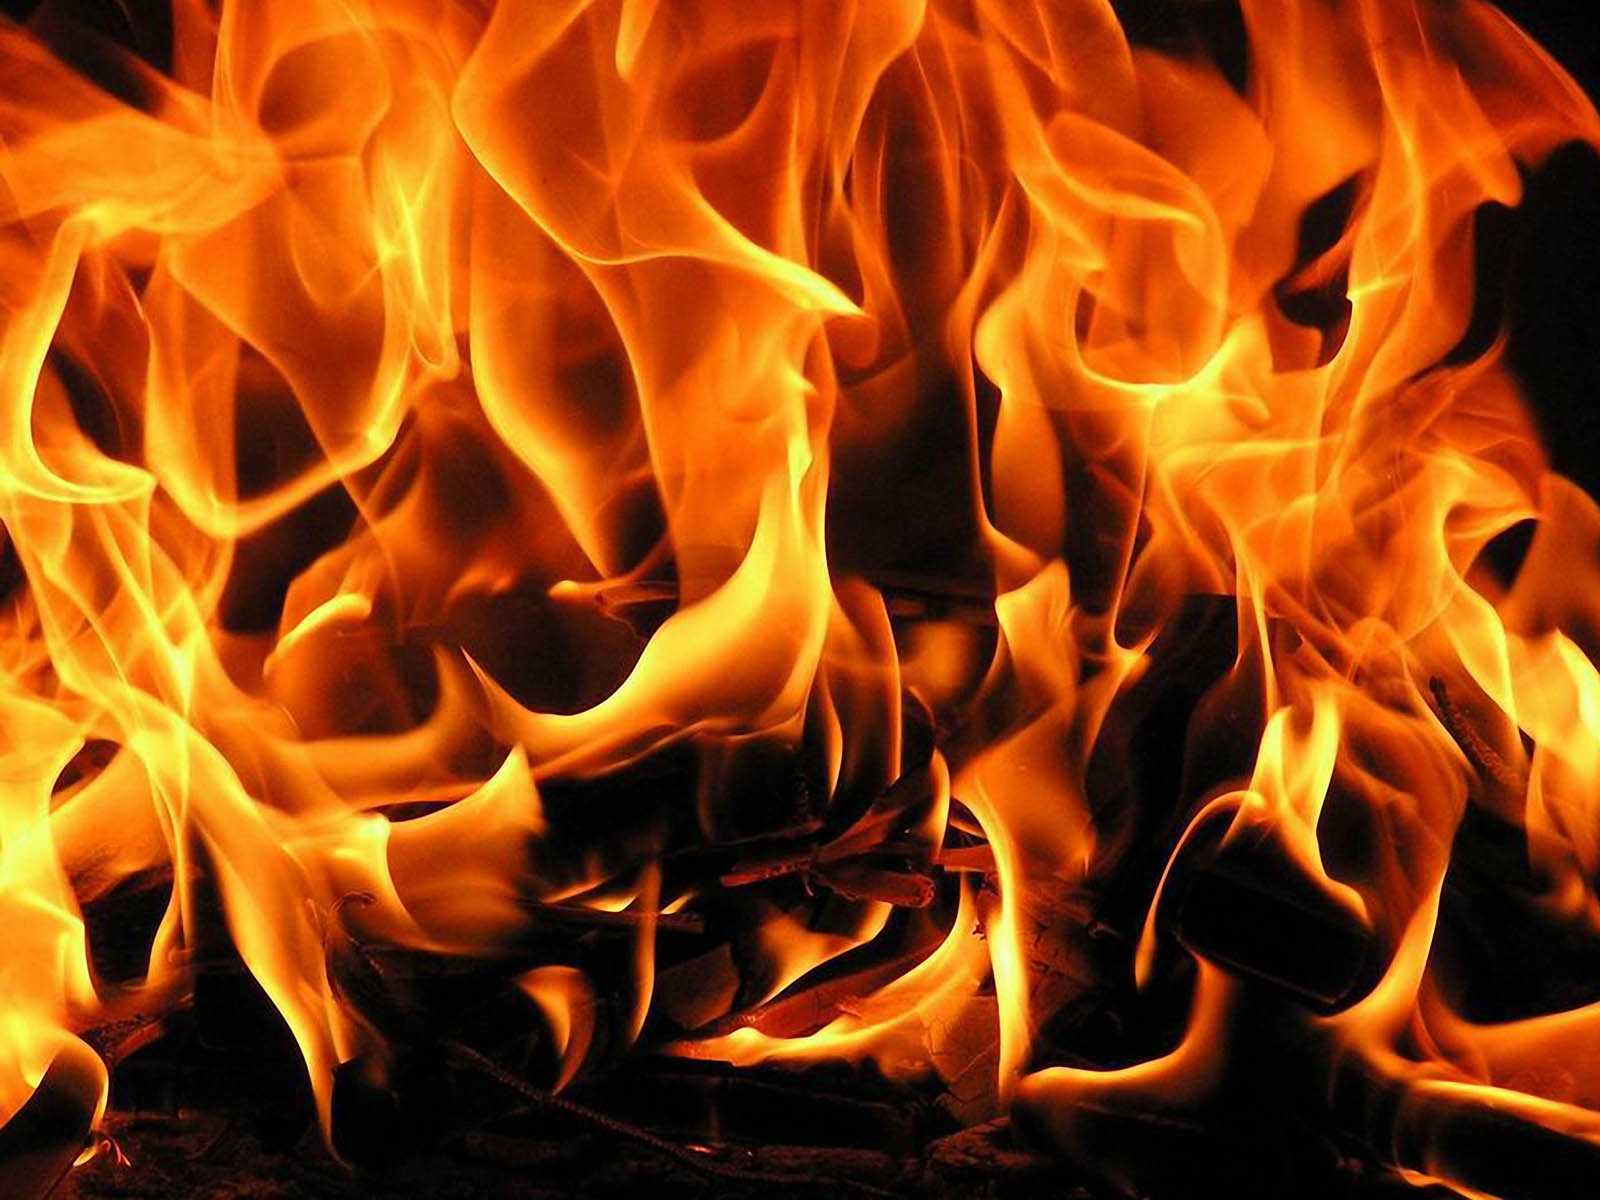 Tag: Fire Flames Images, Photos, Pictures, Wallpapers and Backgrounds